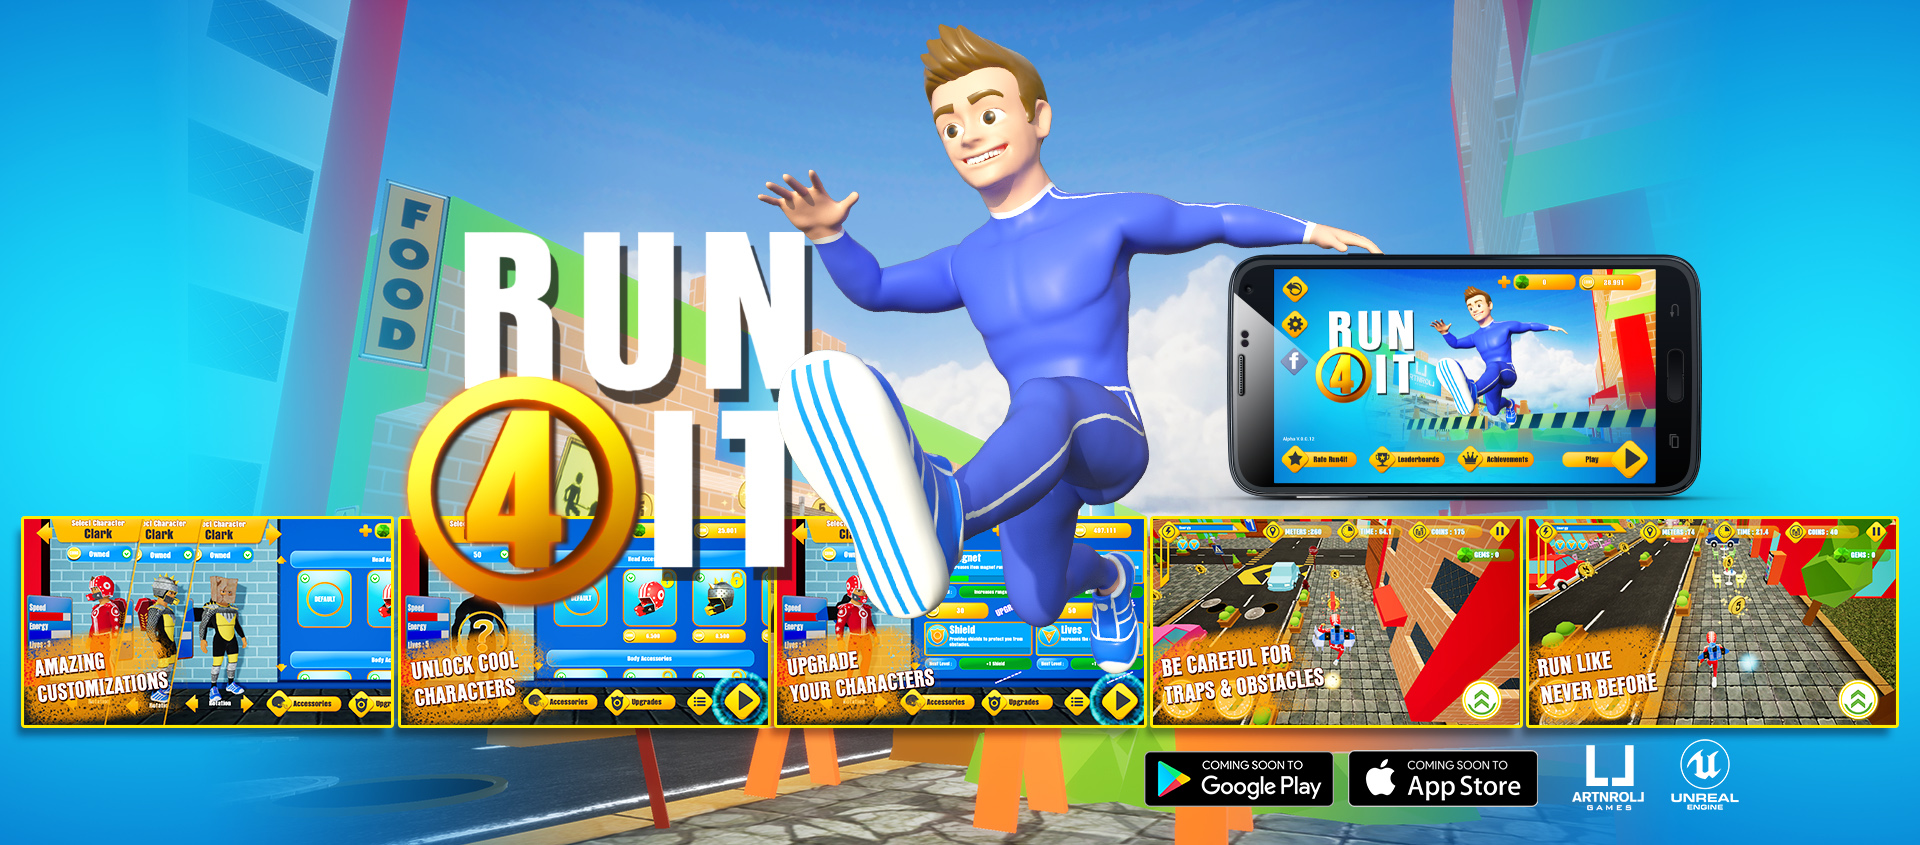 Run4it Review